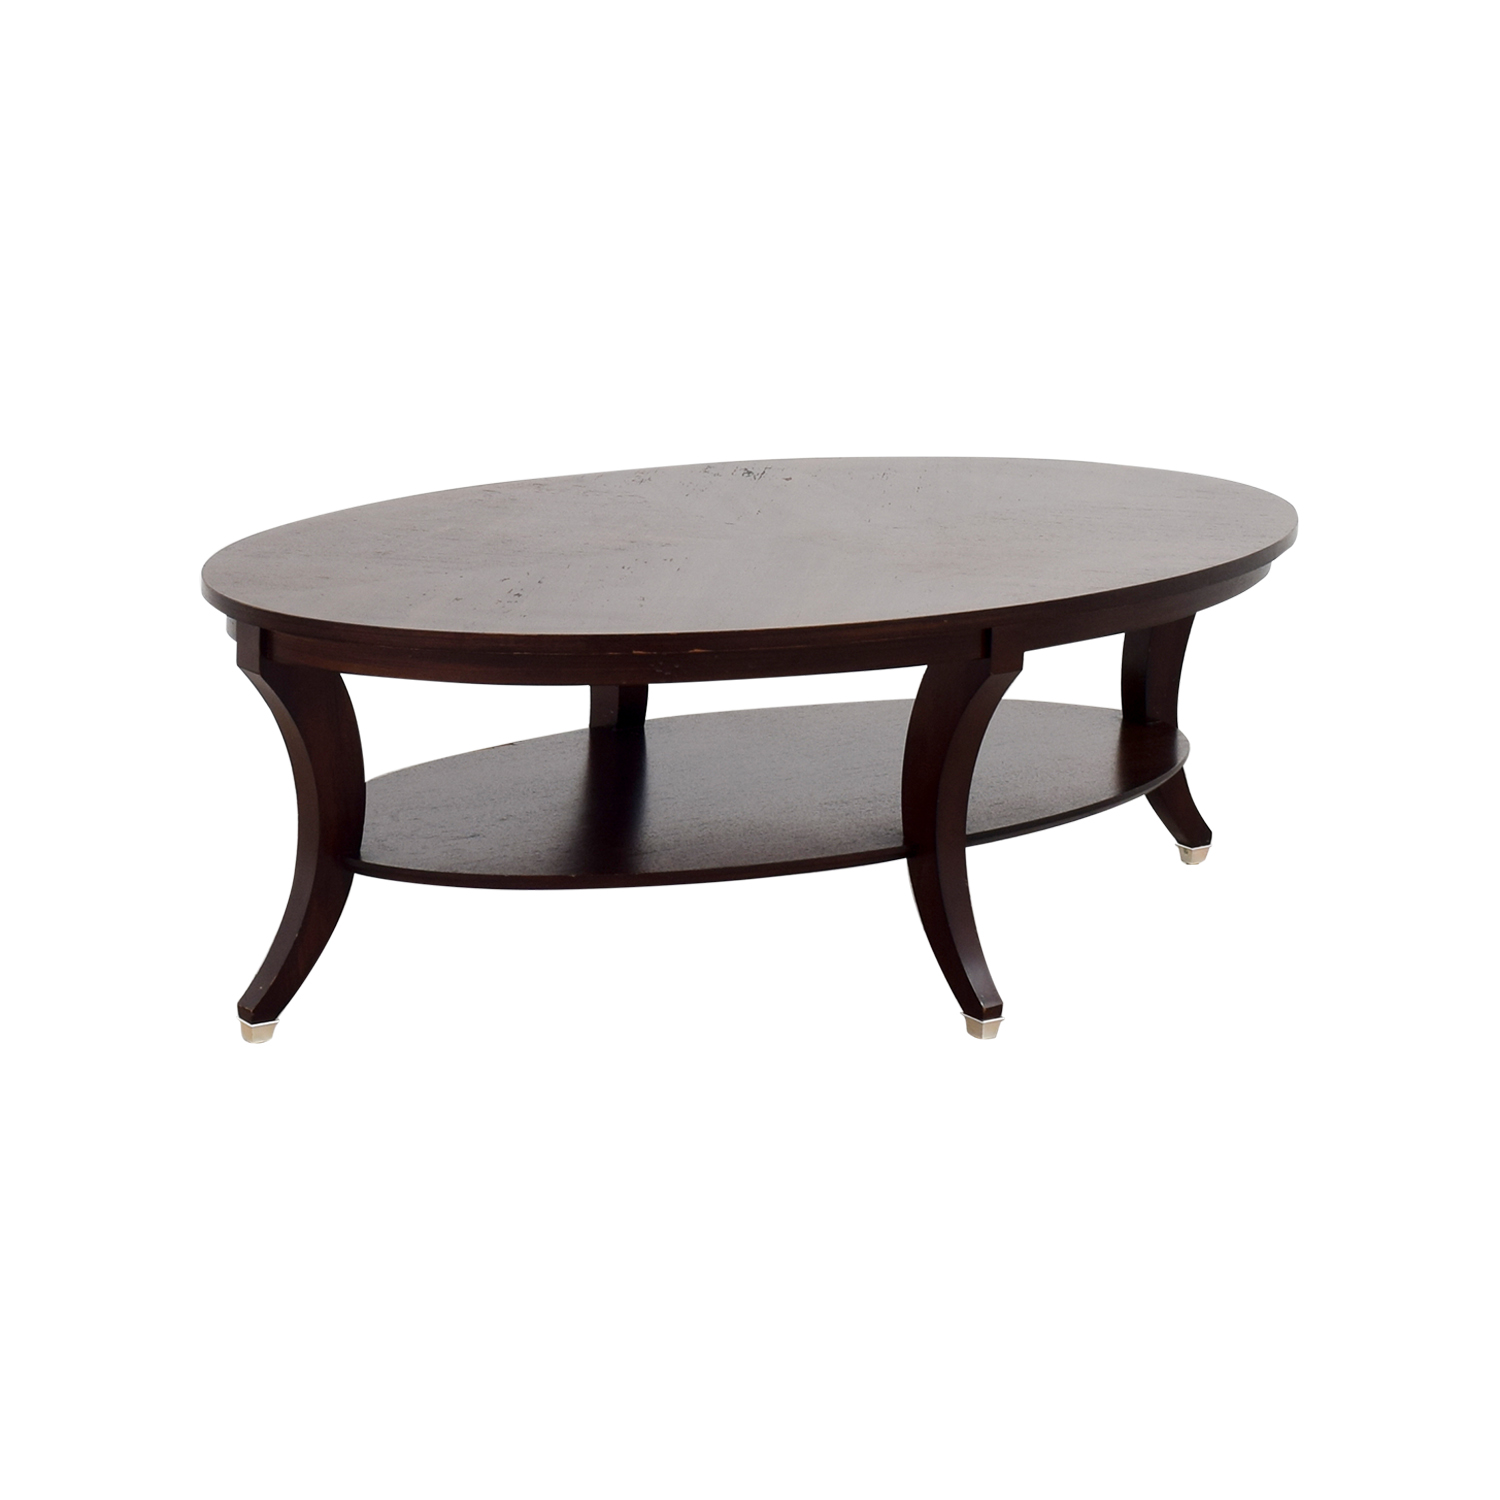 Ethan Allen Coffee Table Glass Top: Ethan Allen Ethan Allen Adler Oval Coffee Table